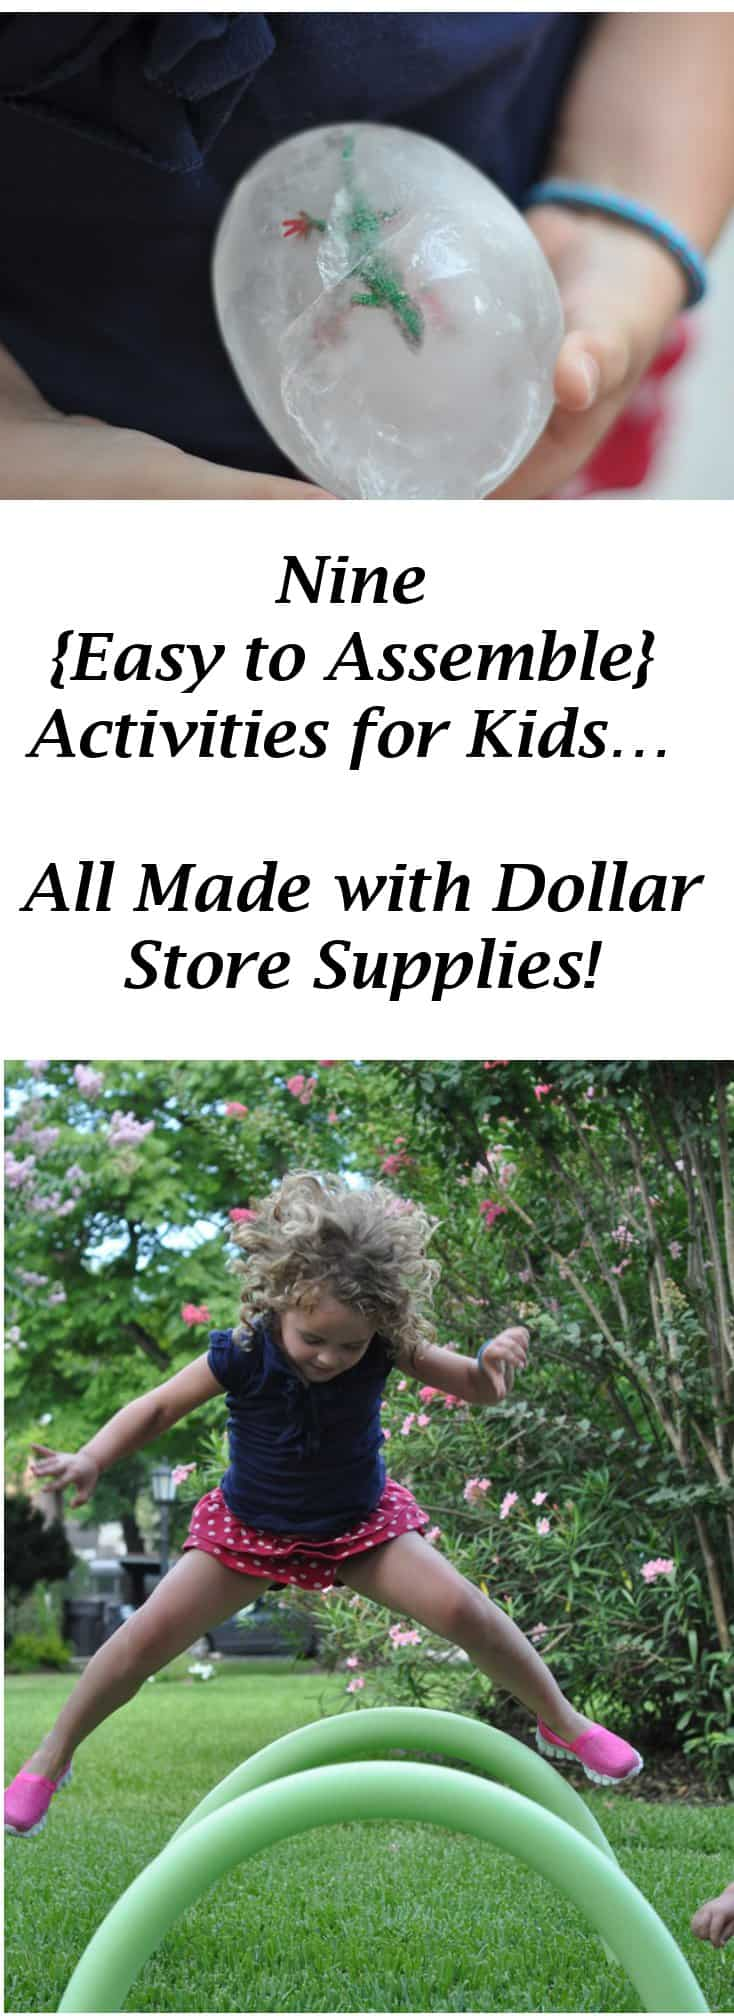 9 {Easy to Assemble} Activities for Kids… All Made with Dollar Store Supplies